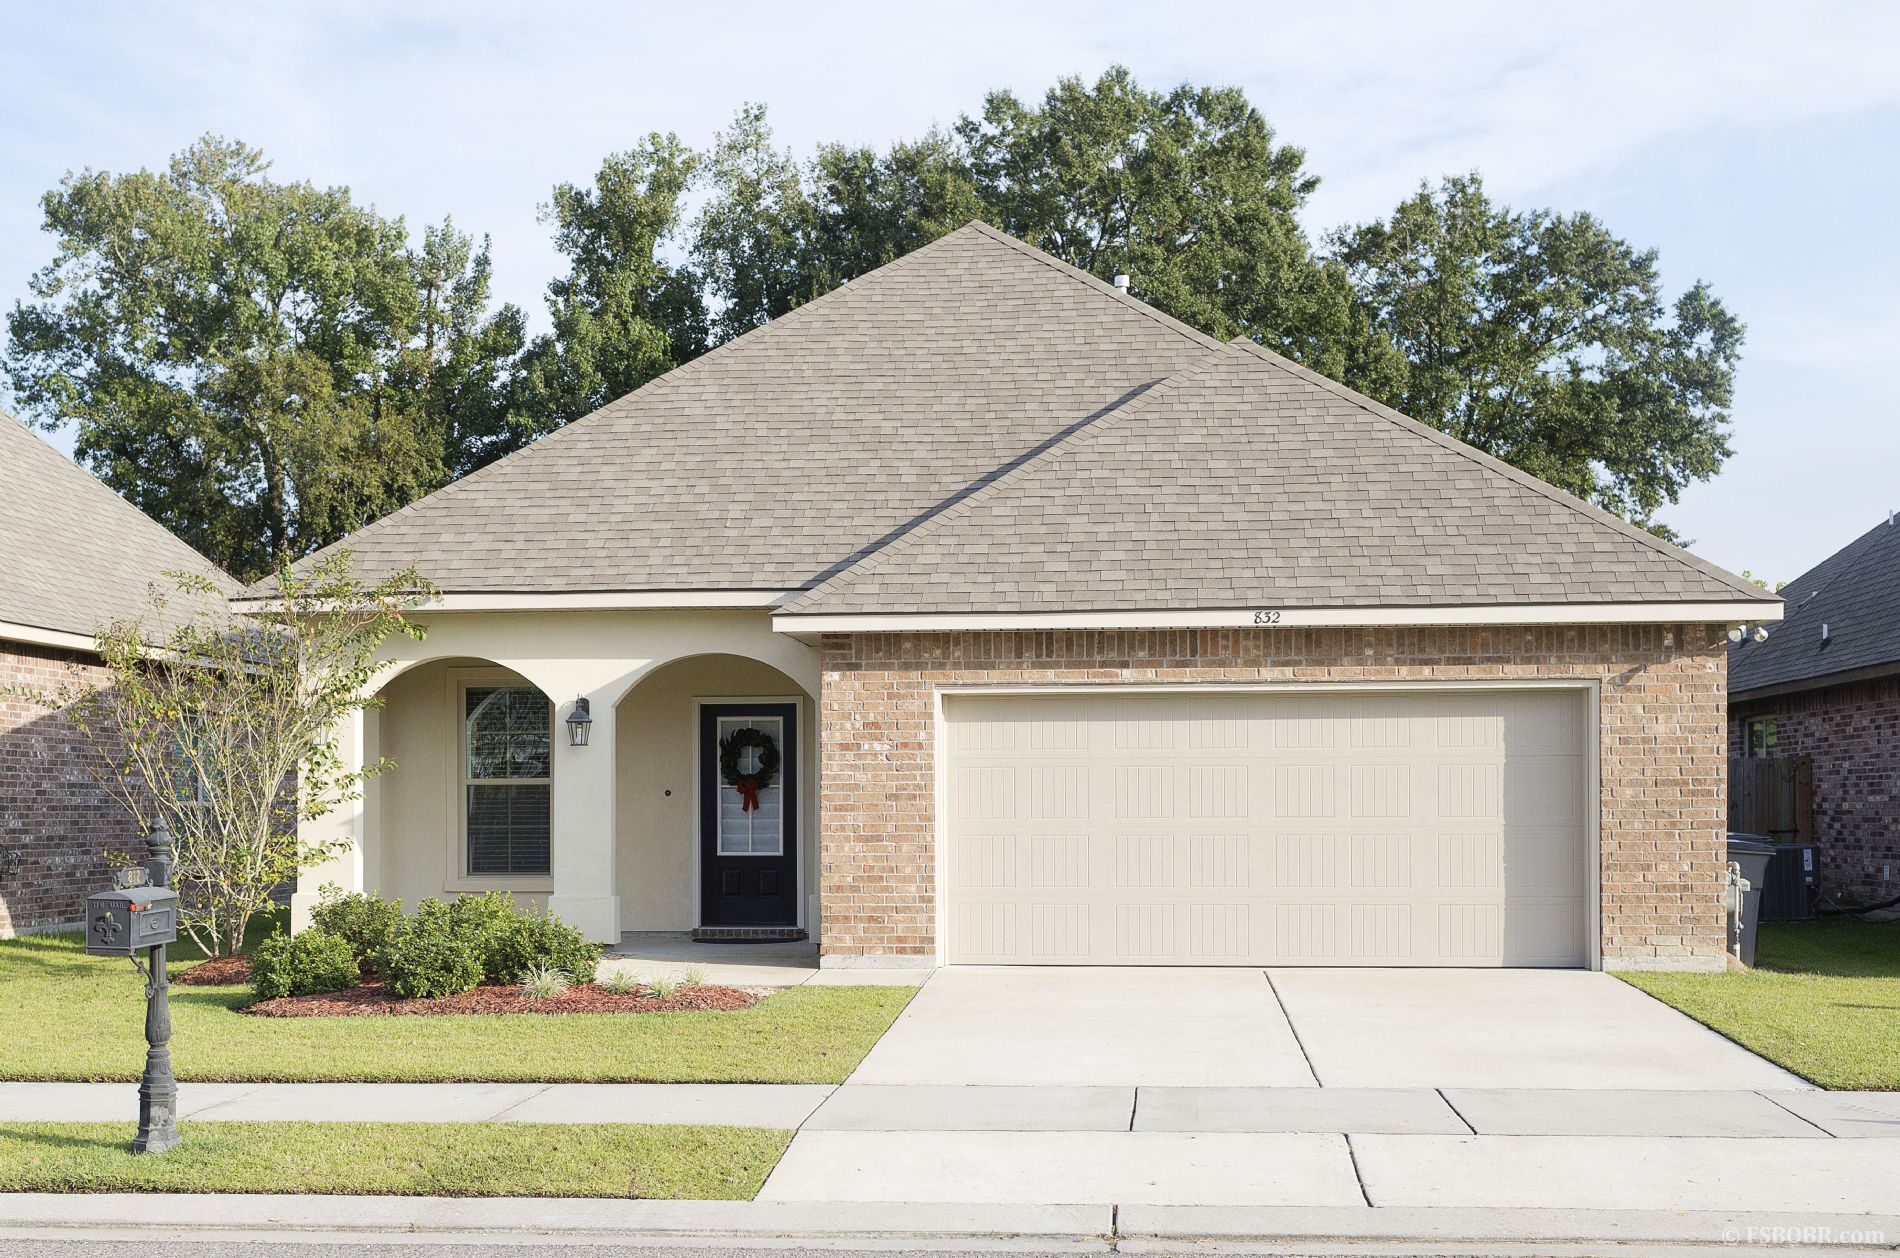 Garage Sale Baton Rouge Buyer Agents Welcome Excellent Home 5 Miles From Lsu 100